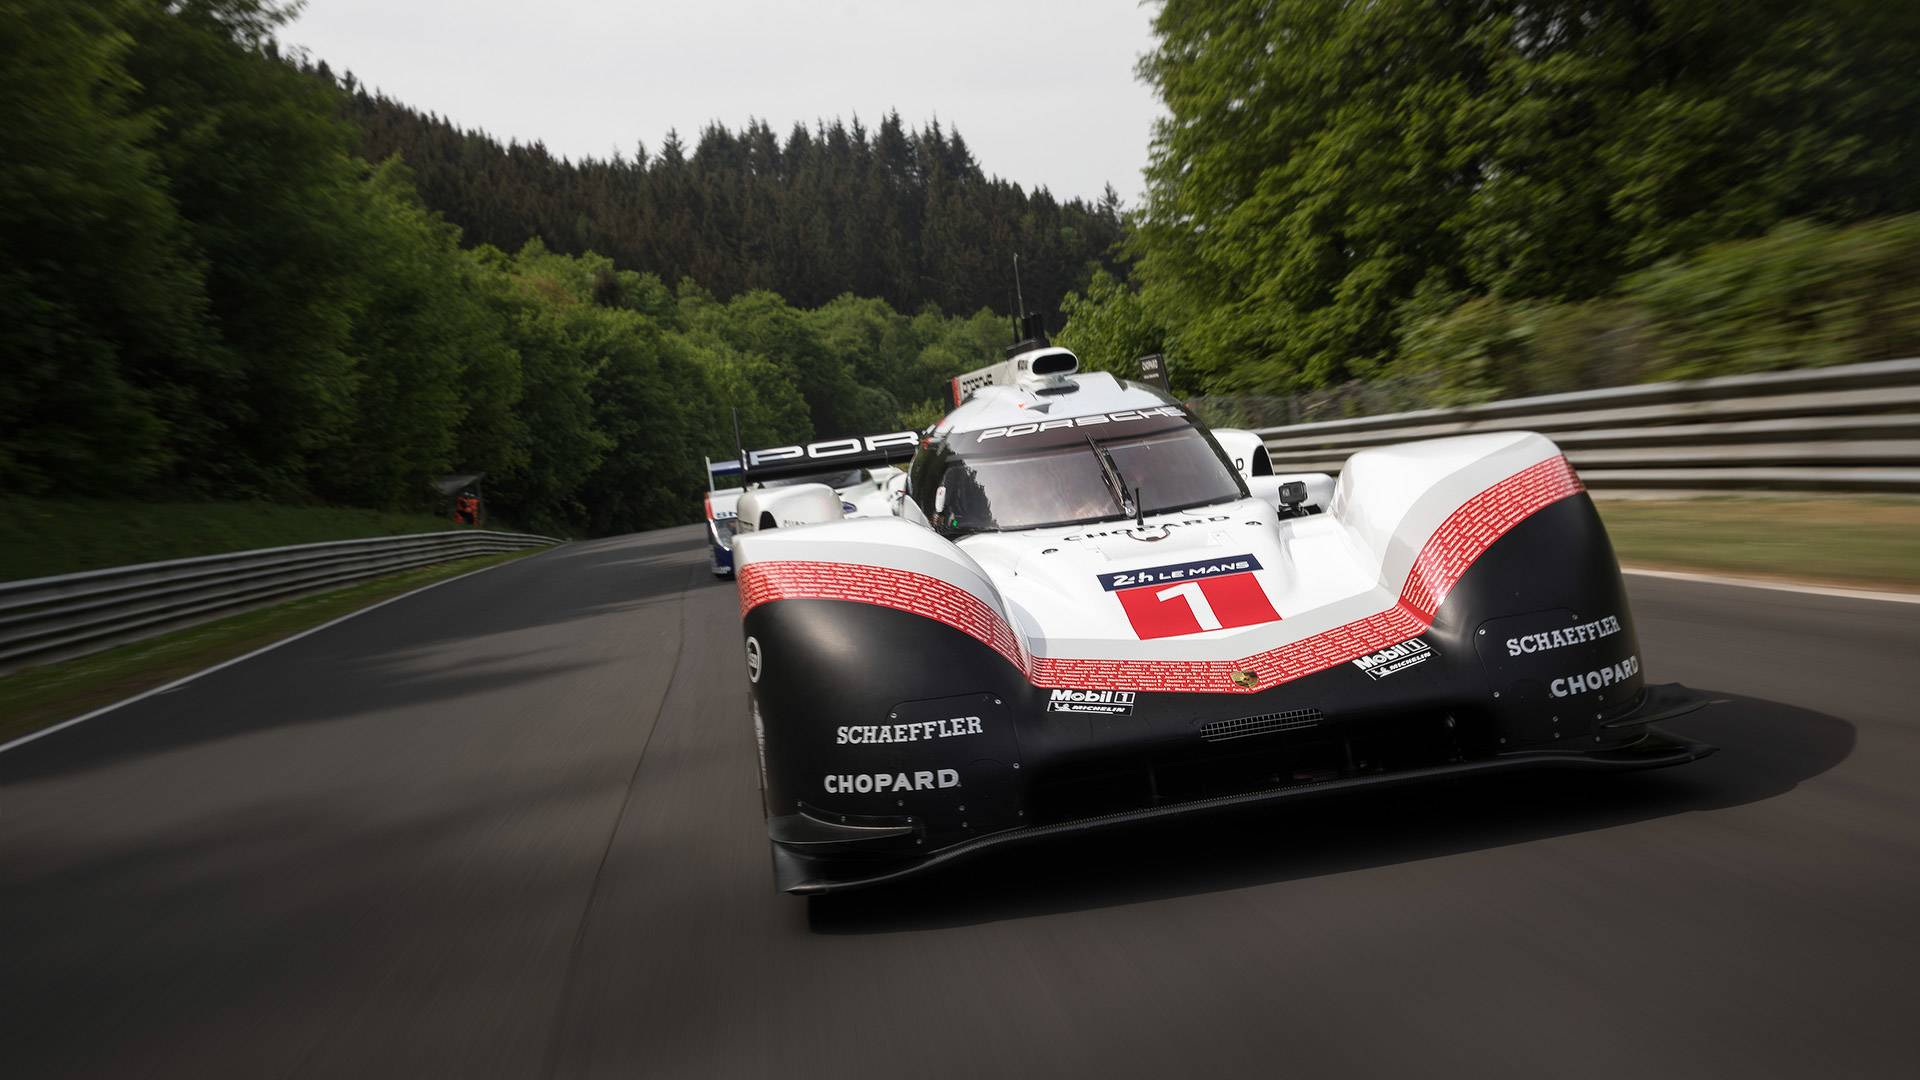 Nürburgring Math Porsche 919 Evo Might Do Sub,5,Minute Lap